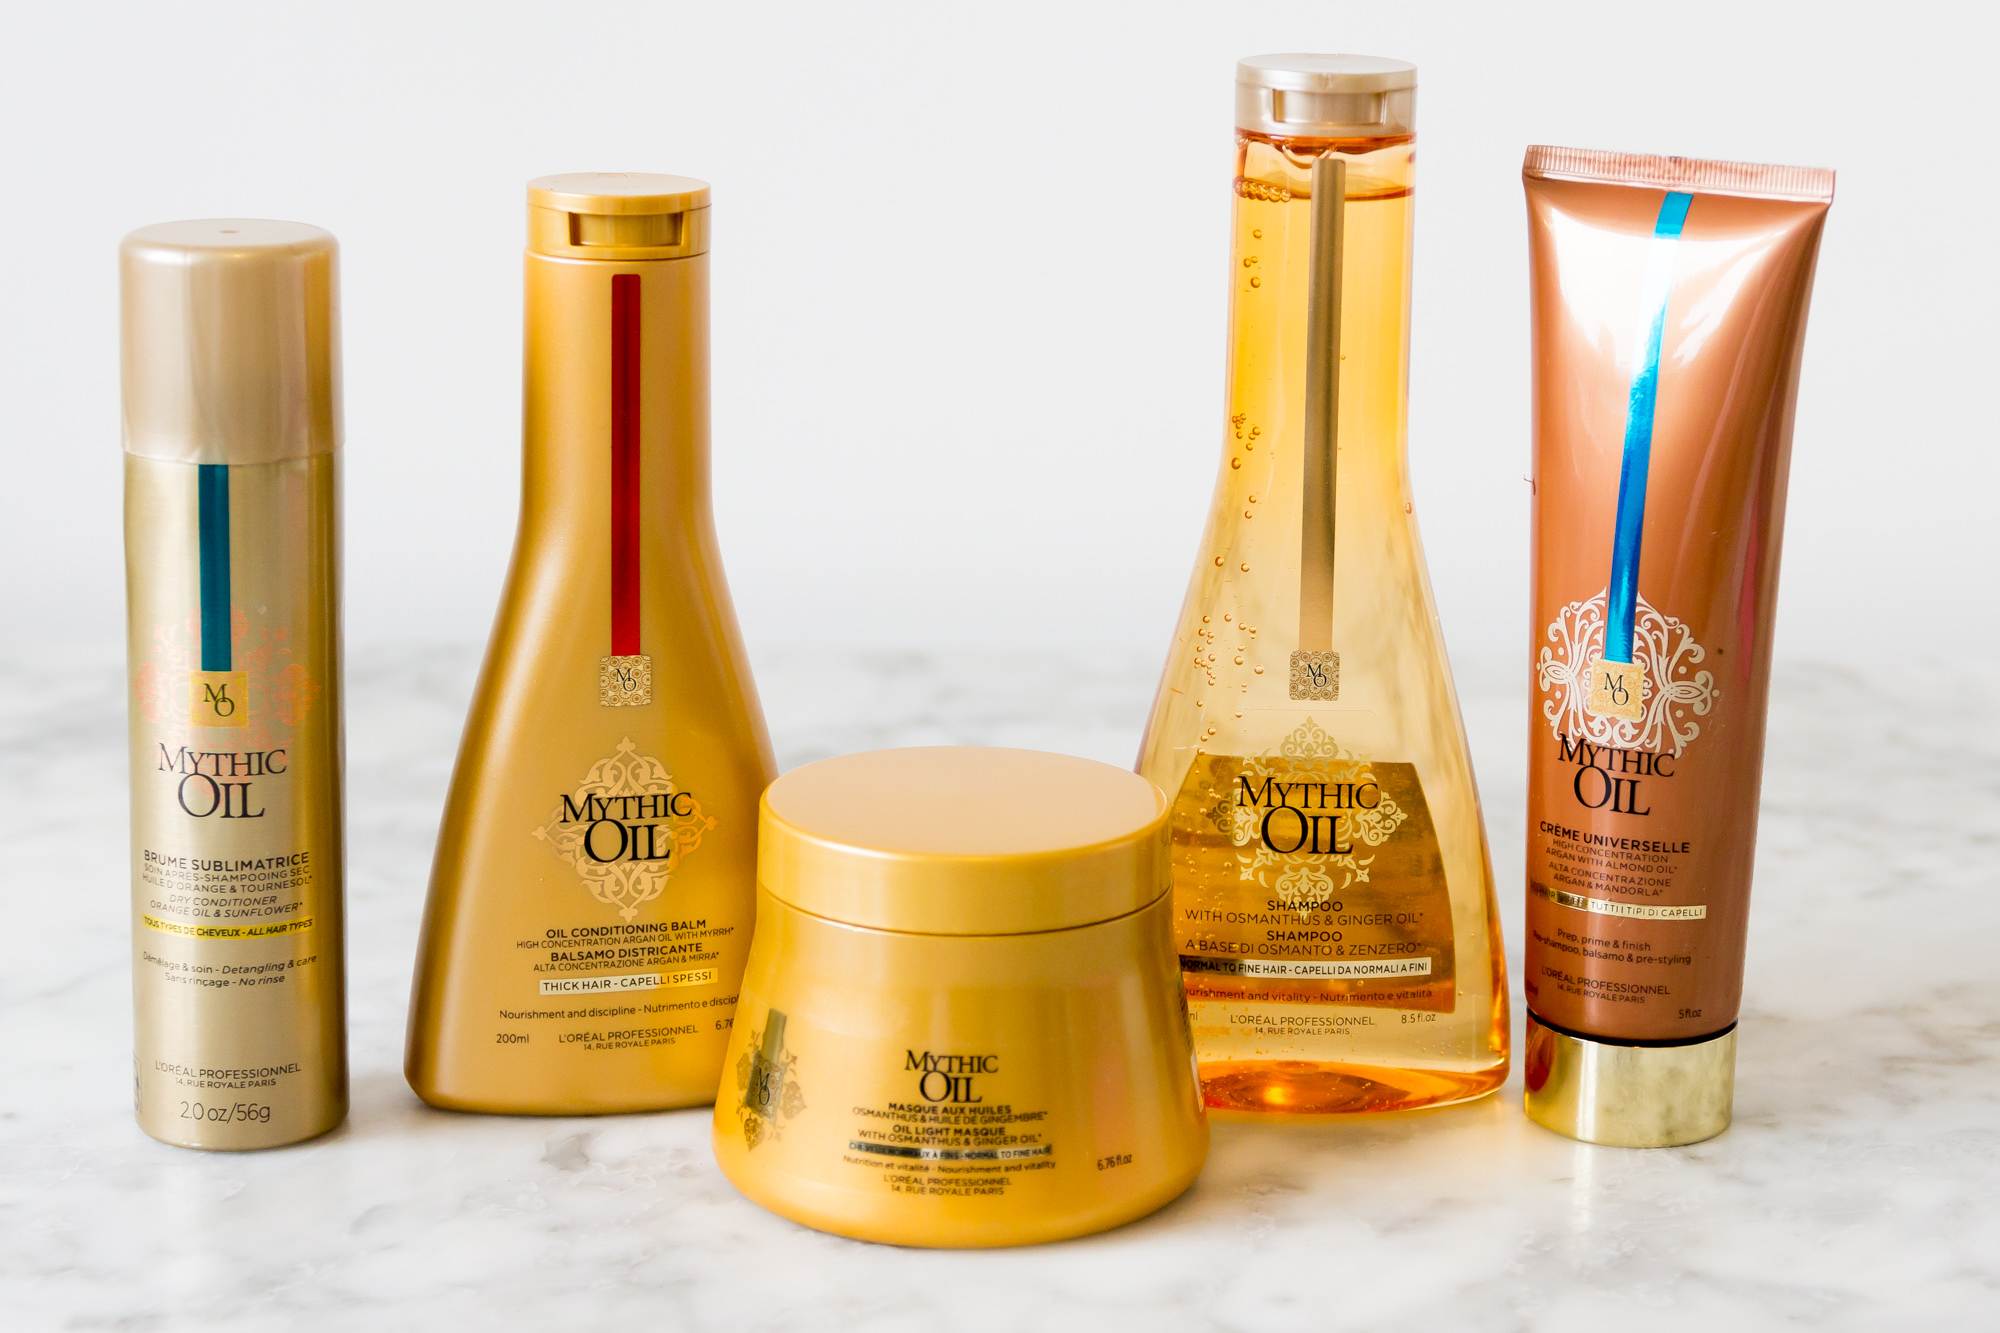 mythic oil loreal professional